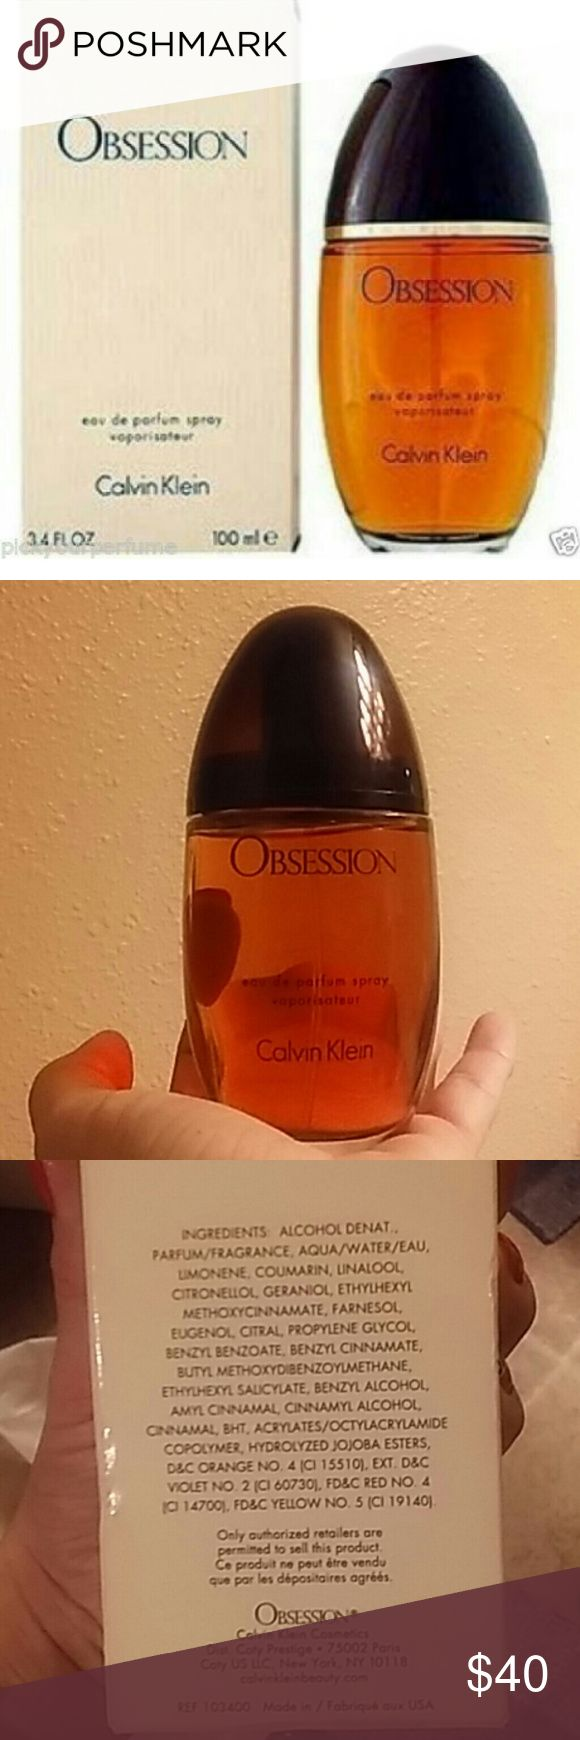 3.5oz🆕🚺Calvin Klein Obsession Perfume New in box from Sephora retail value over $80 this is the womens original Calvin Klein Obsession perfume size 3.5 ounce glass bottle. This is new inbox , never used. Calvin Klein Other